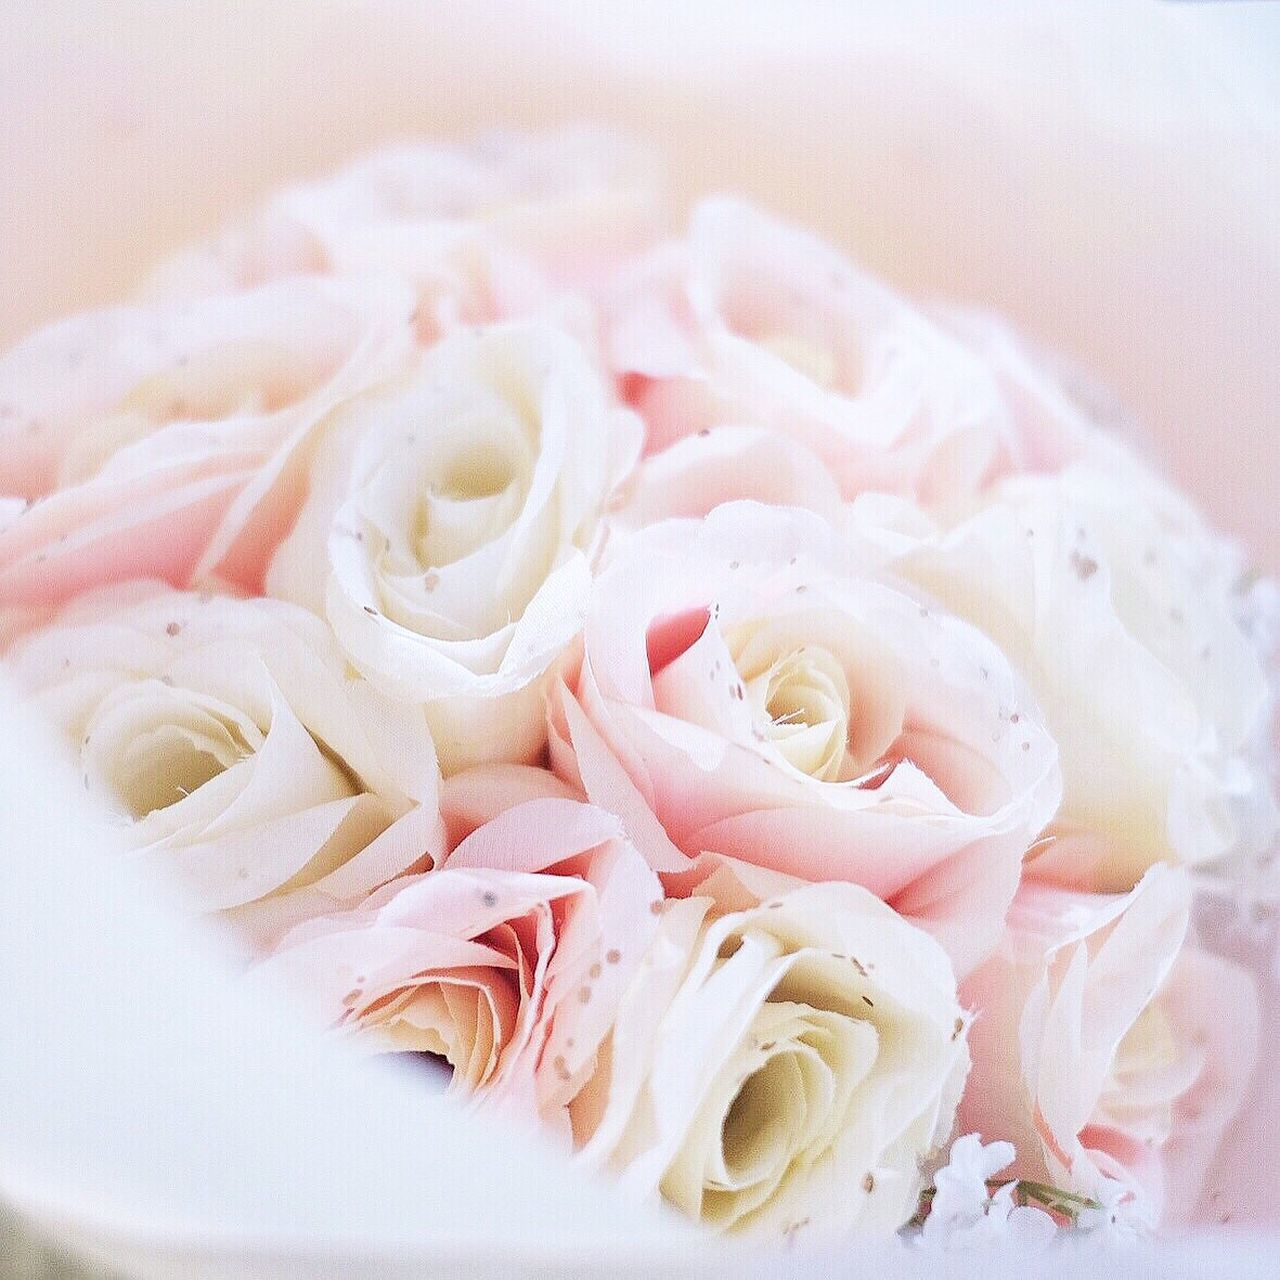 food and drink, freshness, no people, food, close-up, healthy eating, rose - flower, indoors, flower, flower head, ready-to-eat, day